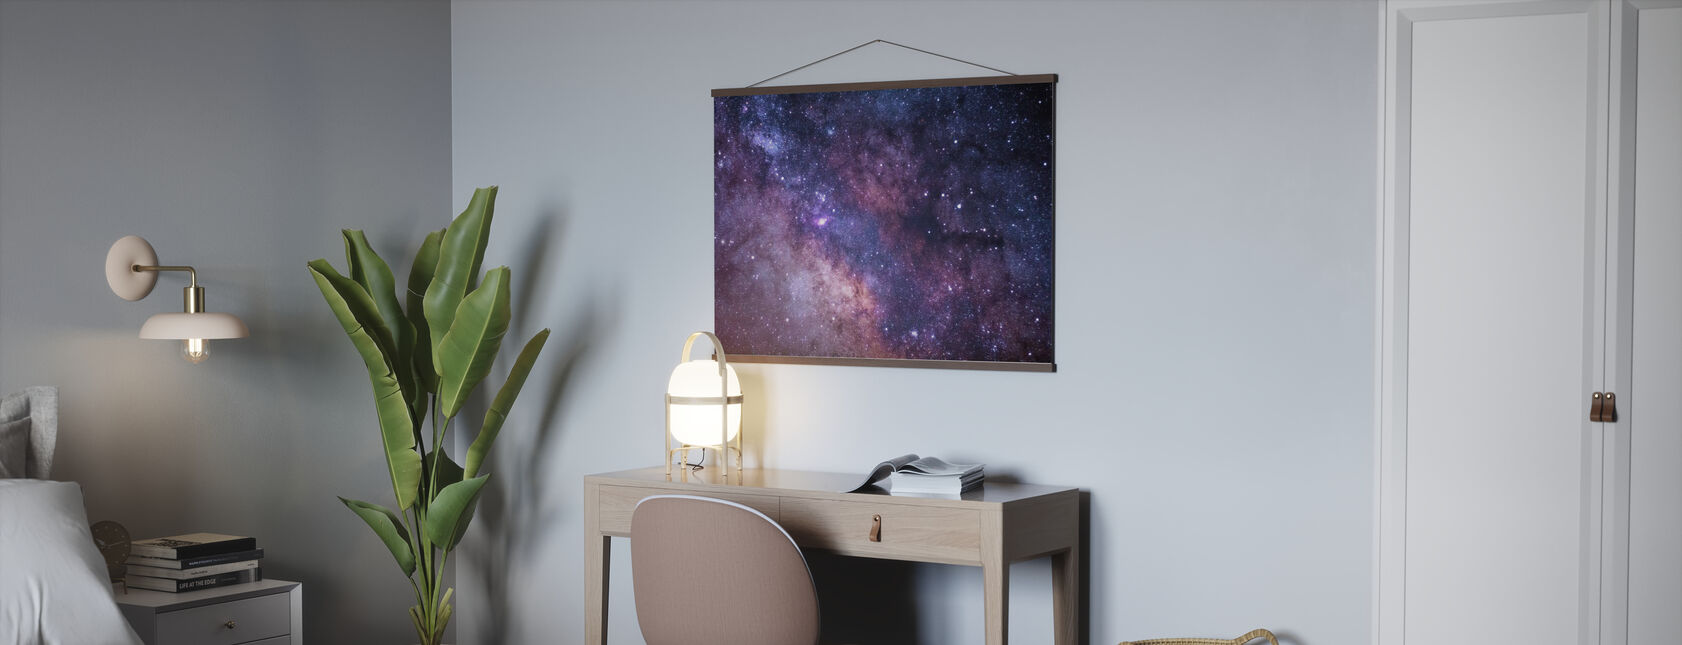 Galaxy - Poster - Office